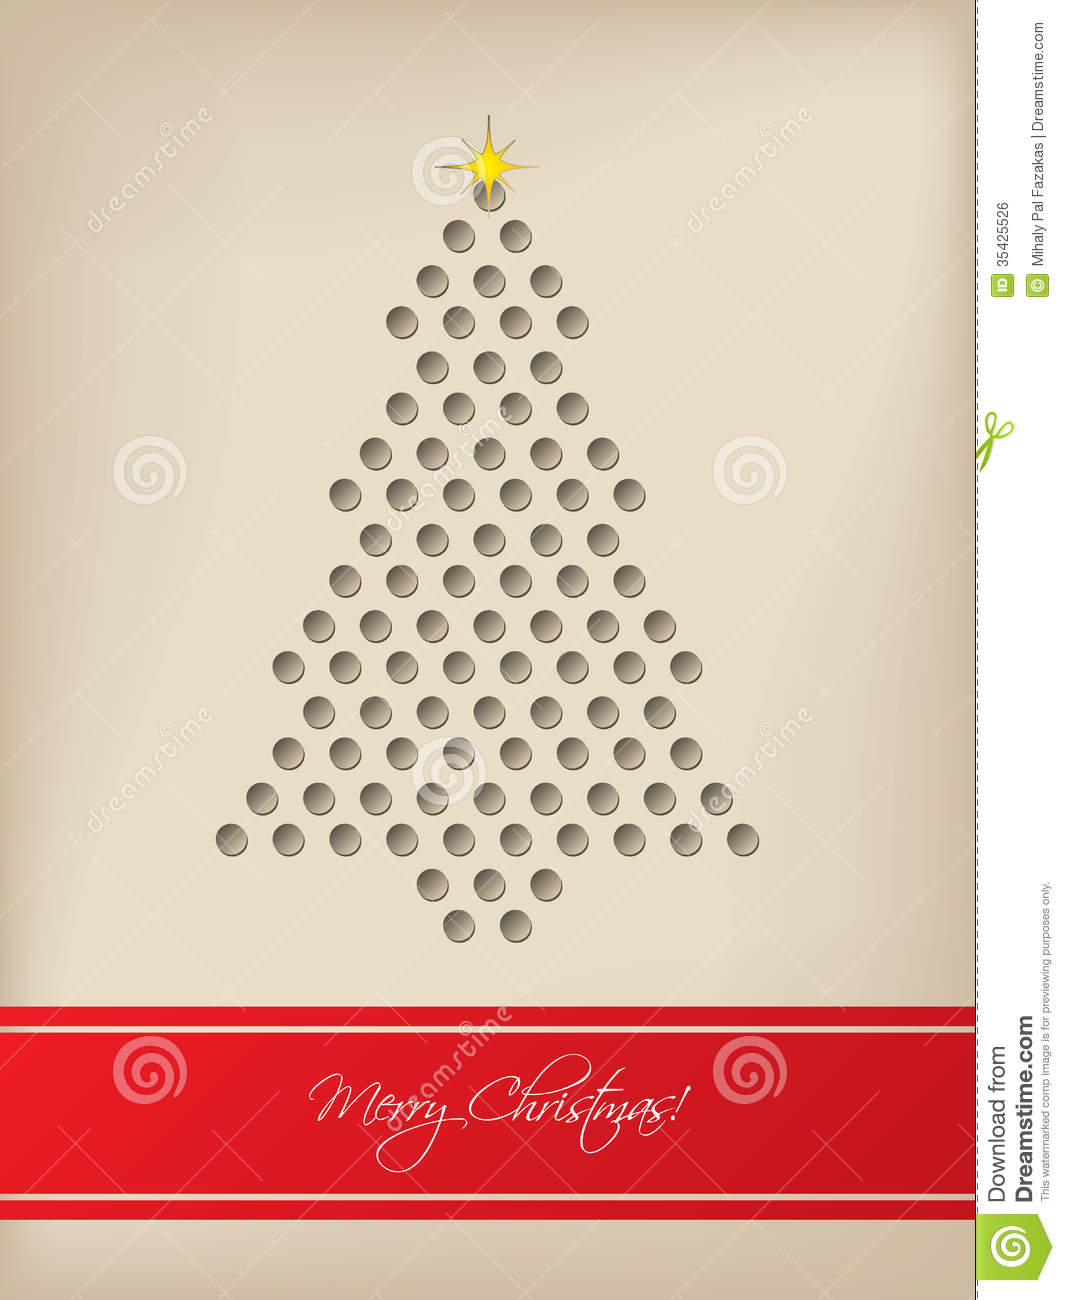 Cool Christmas Cards Merry Christmas And Happy New Year 2018